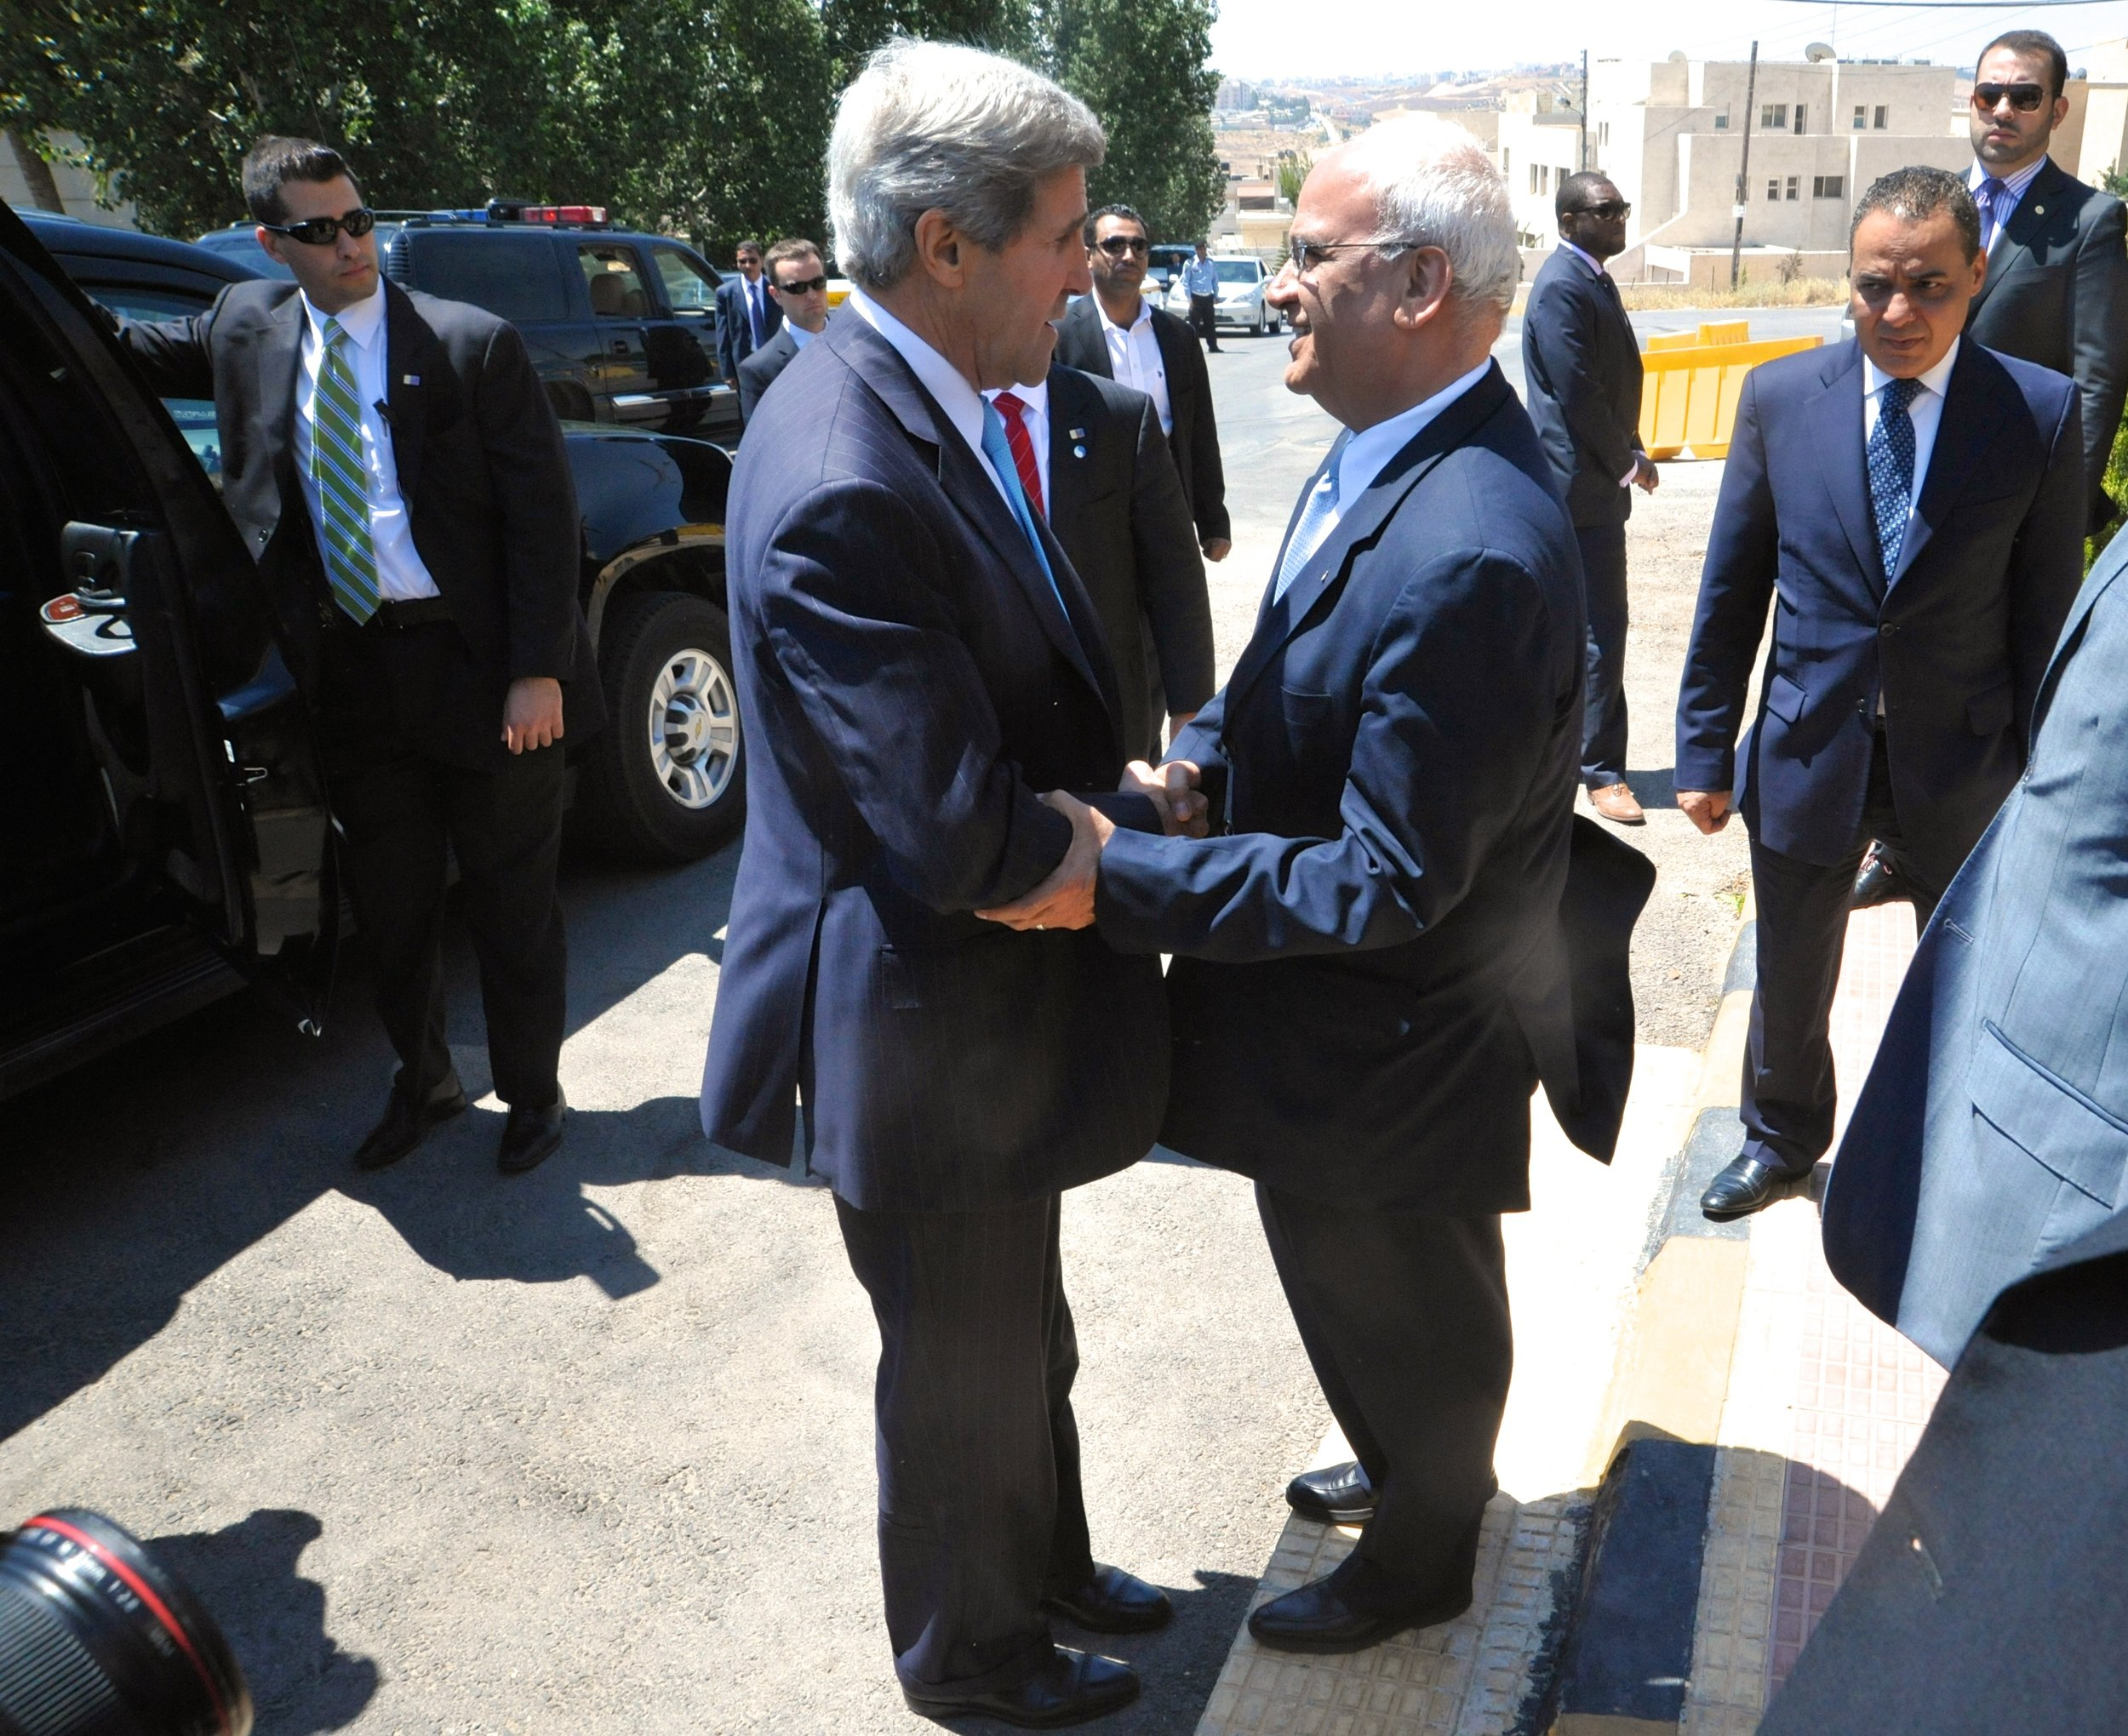 Palestinian Authority lead negotiator Saeb Erekat (center, right) greets then-Secretary of State John Kerry in Amman, Jordan, in June 2013. Credit: U.S. Department of State